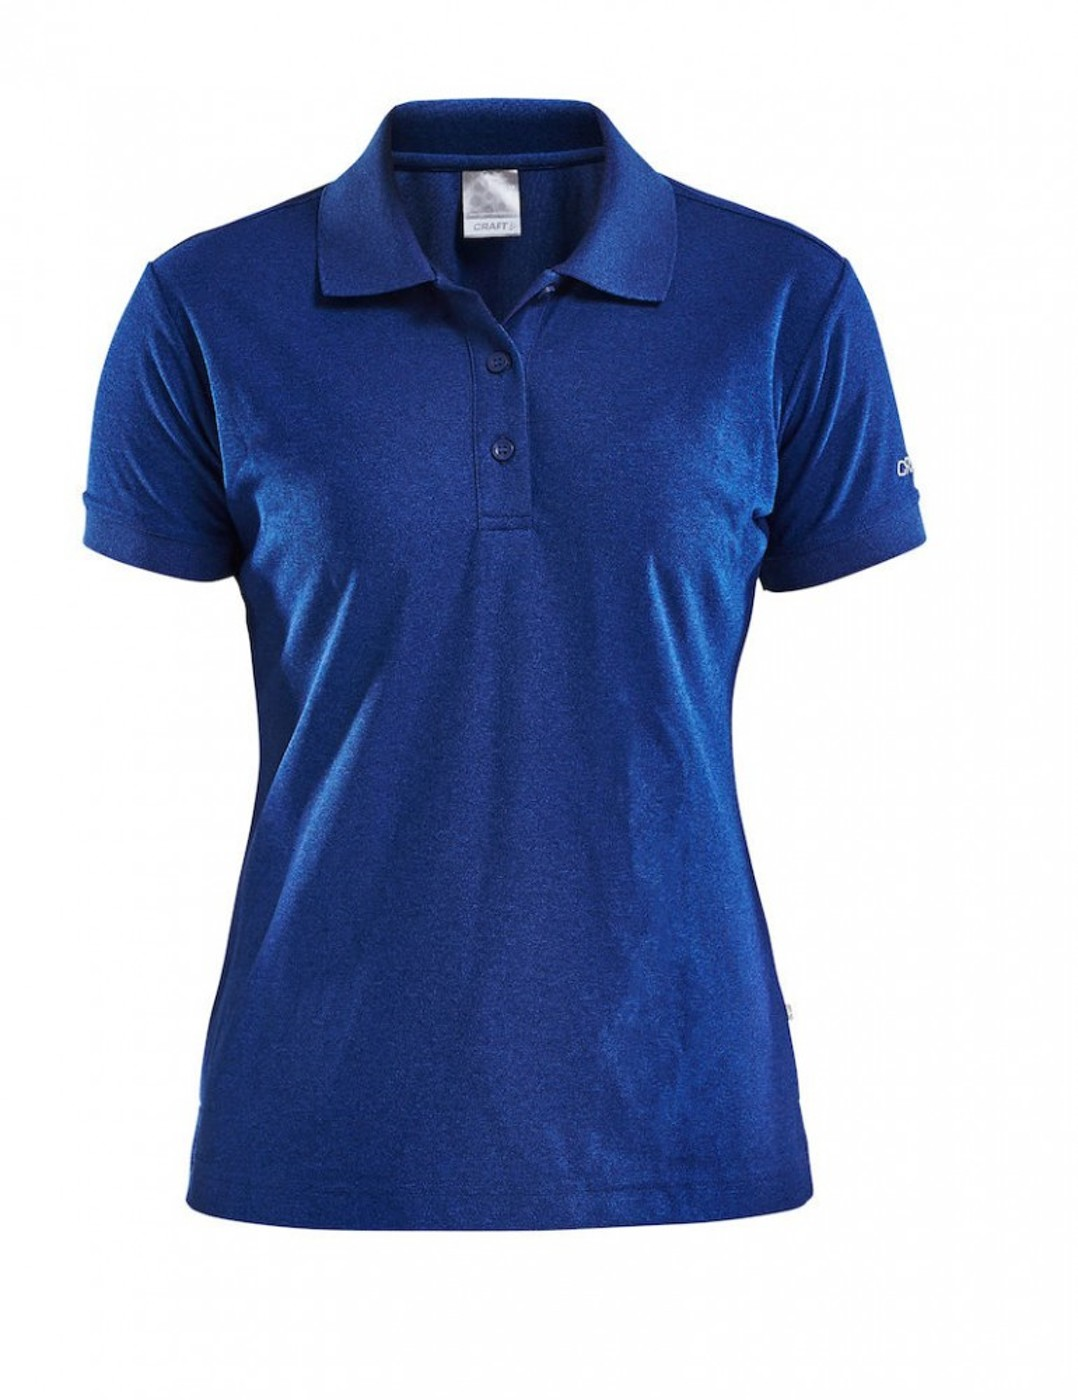 CRAFT POLO PIQUE CLASSIC W - Damen